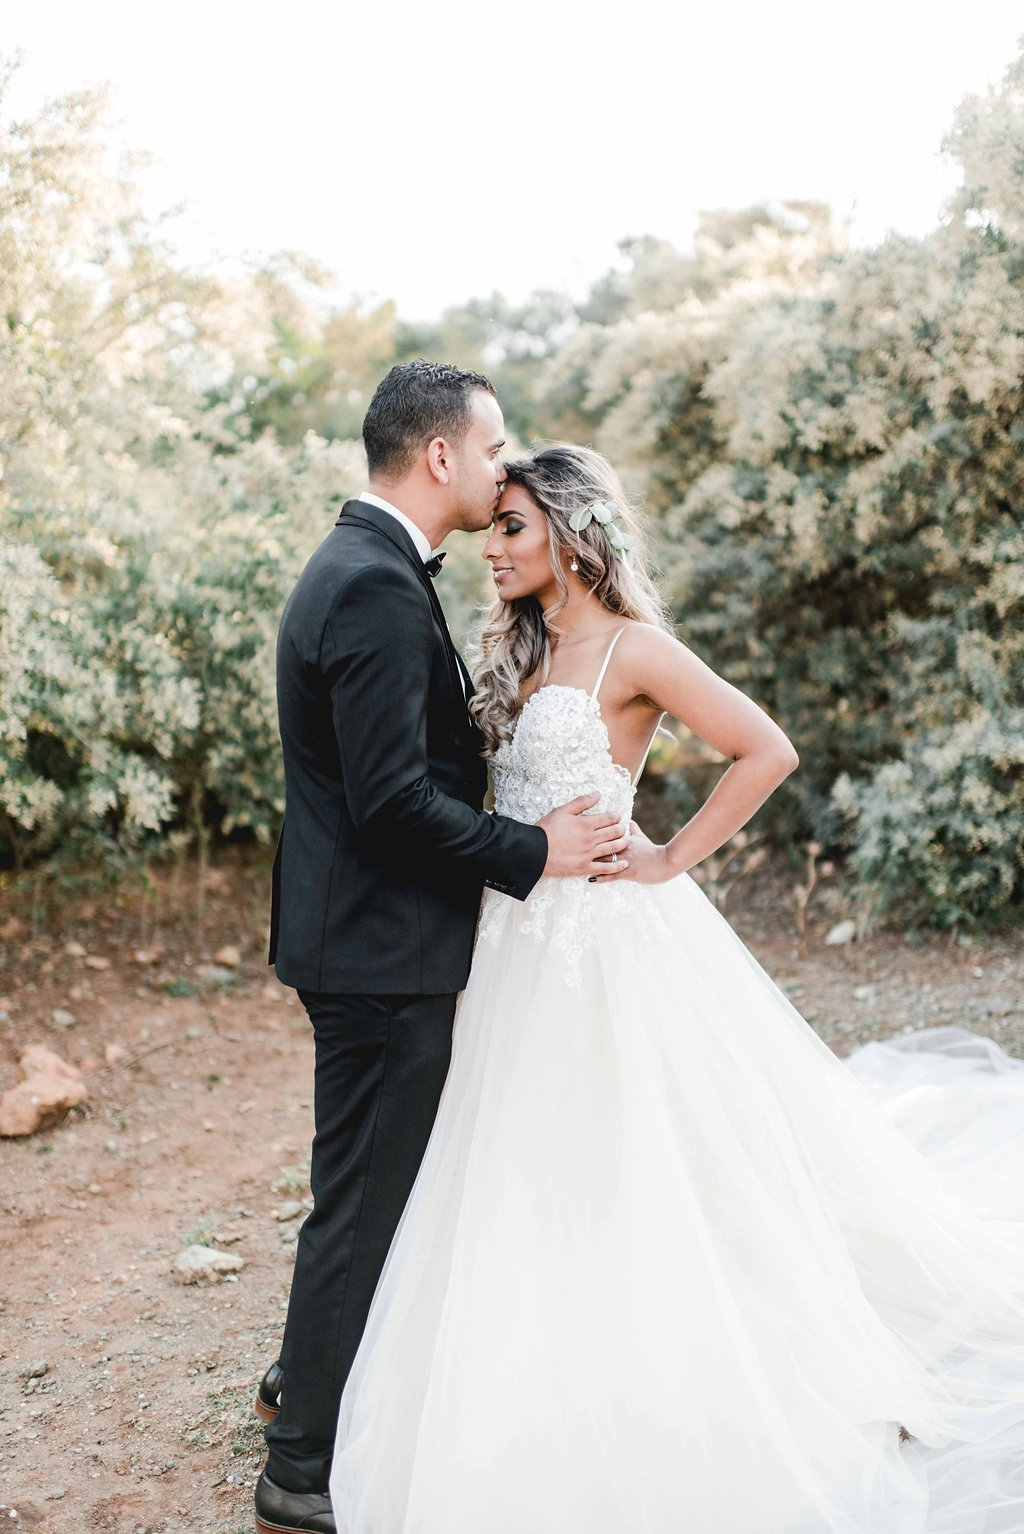 Bride and Groom | Image: Carla Adel